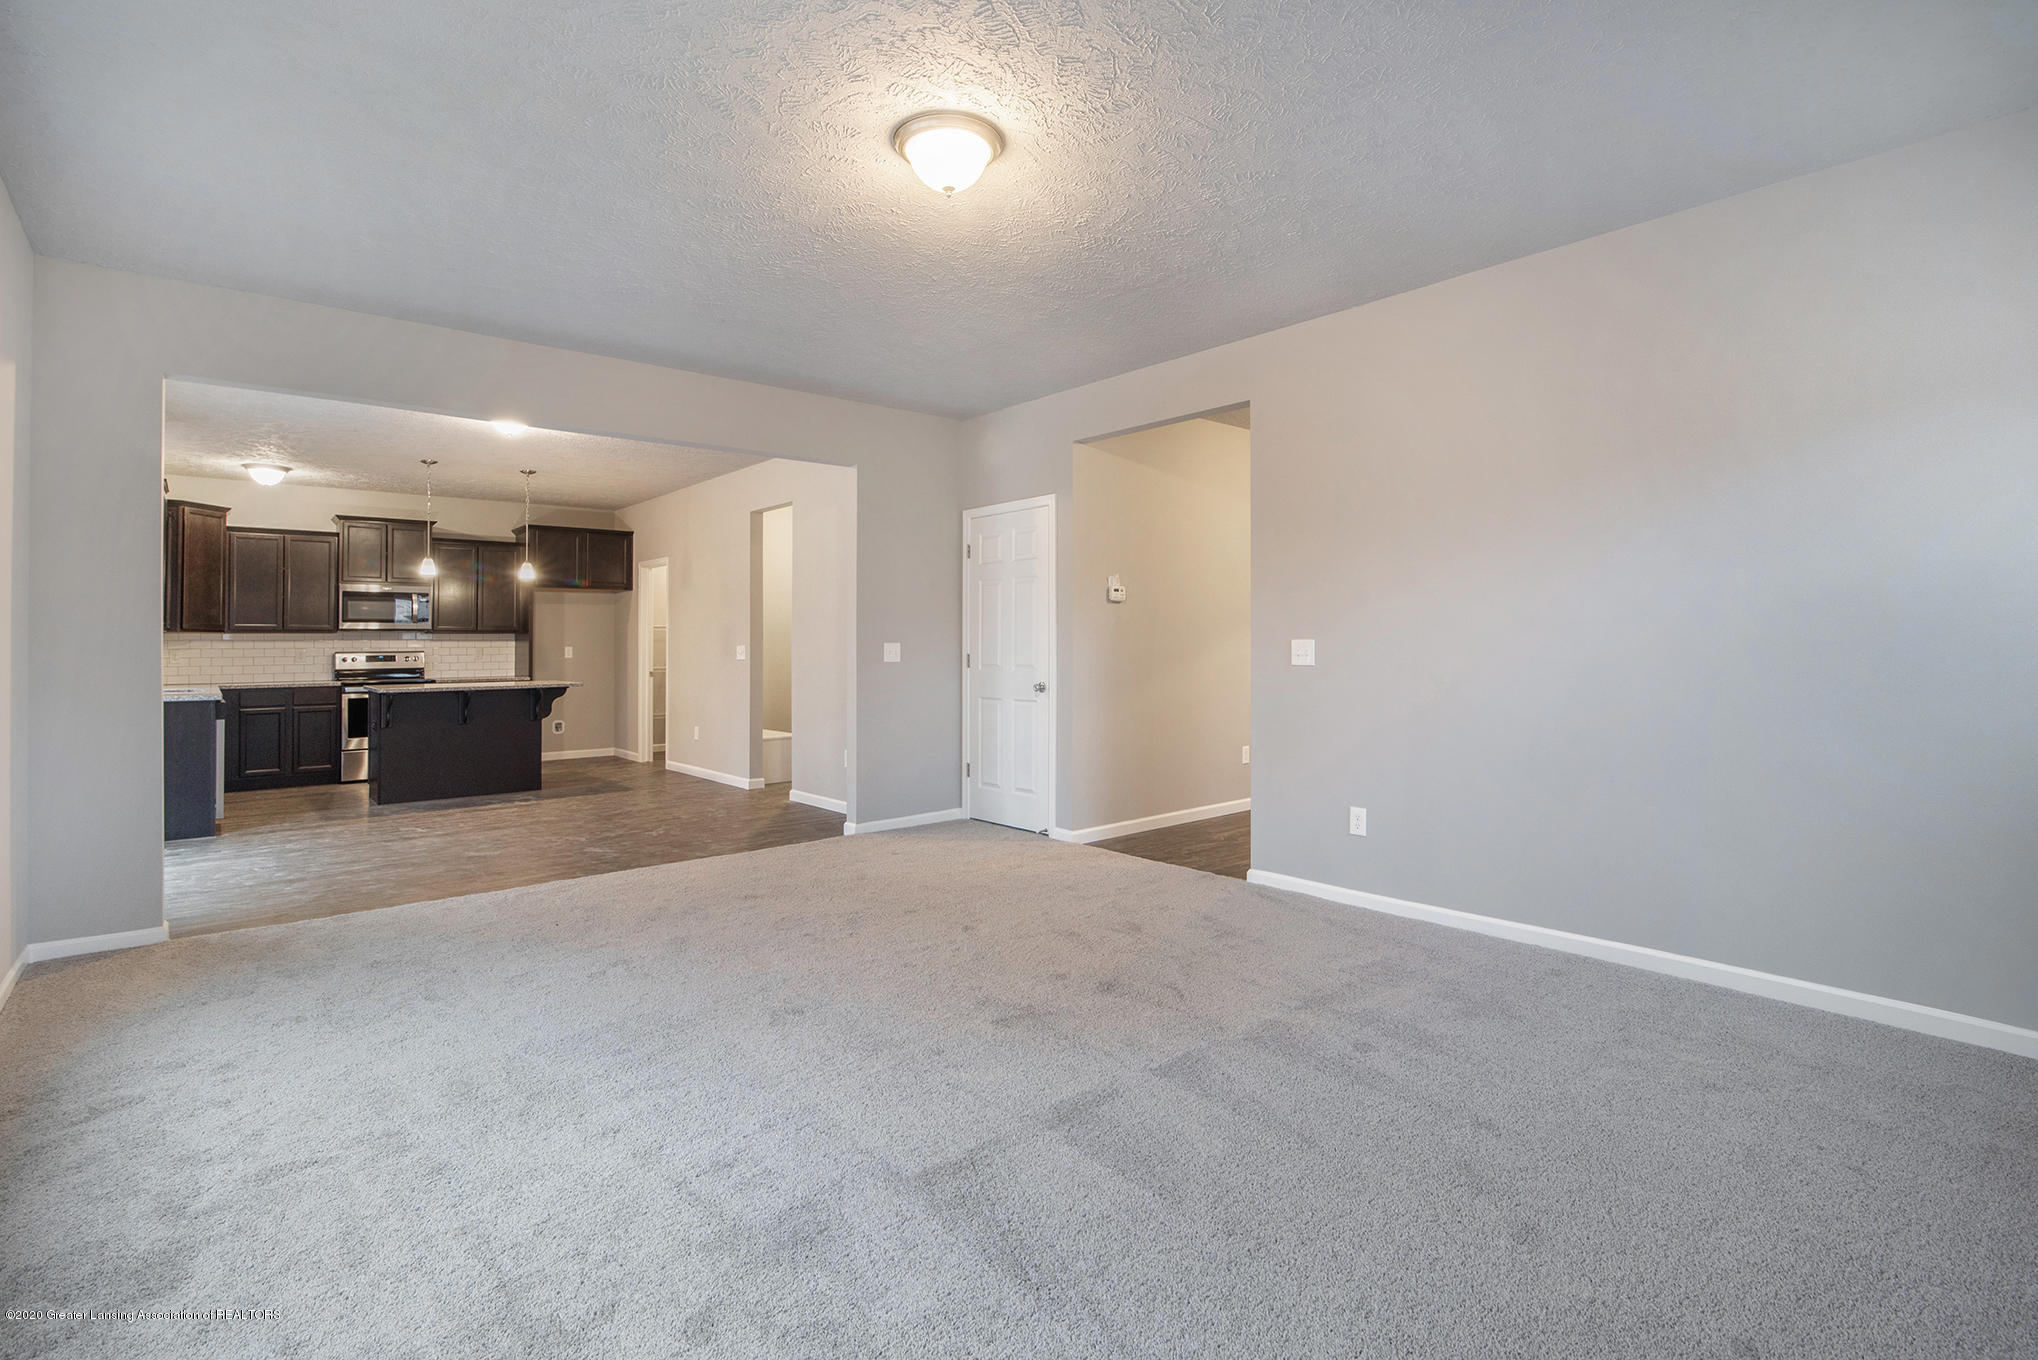 5351 Somerset Dr - GMR081-E2390-Great Room2 - 6